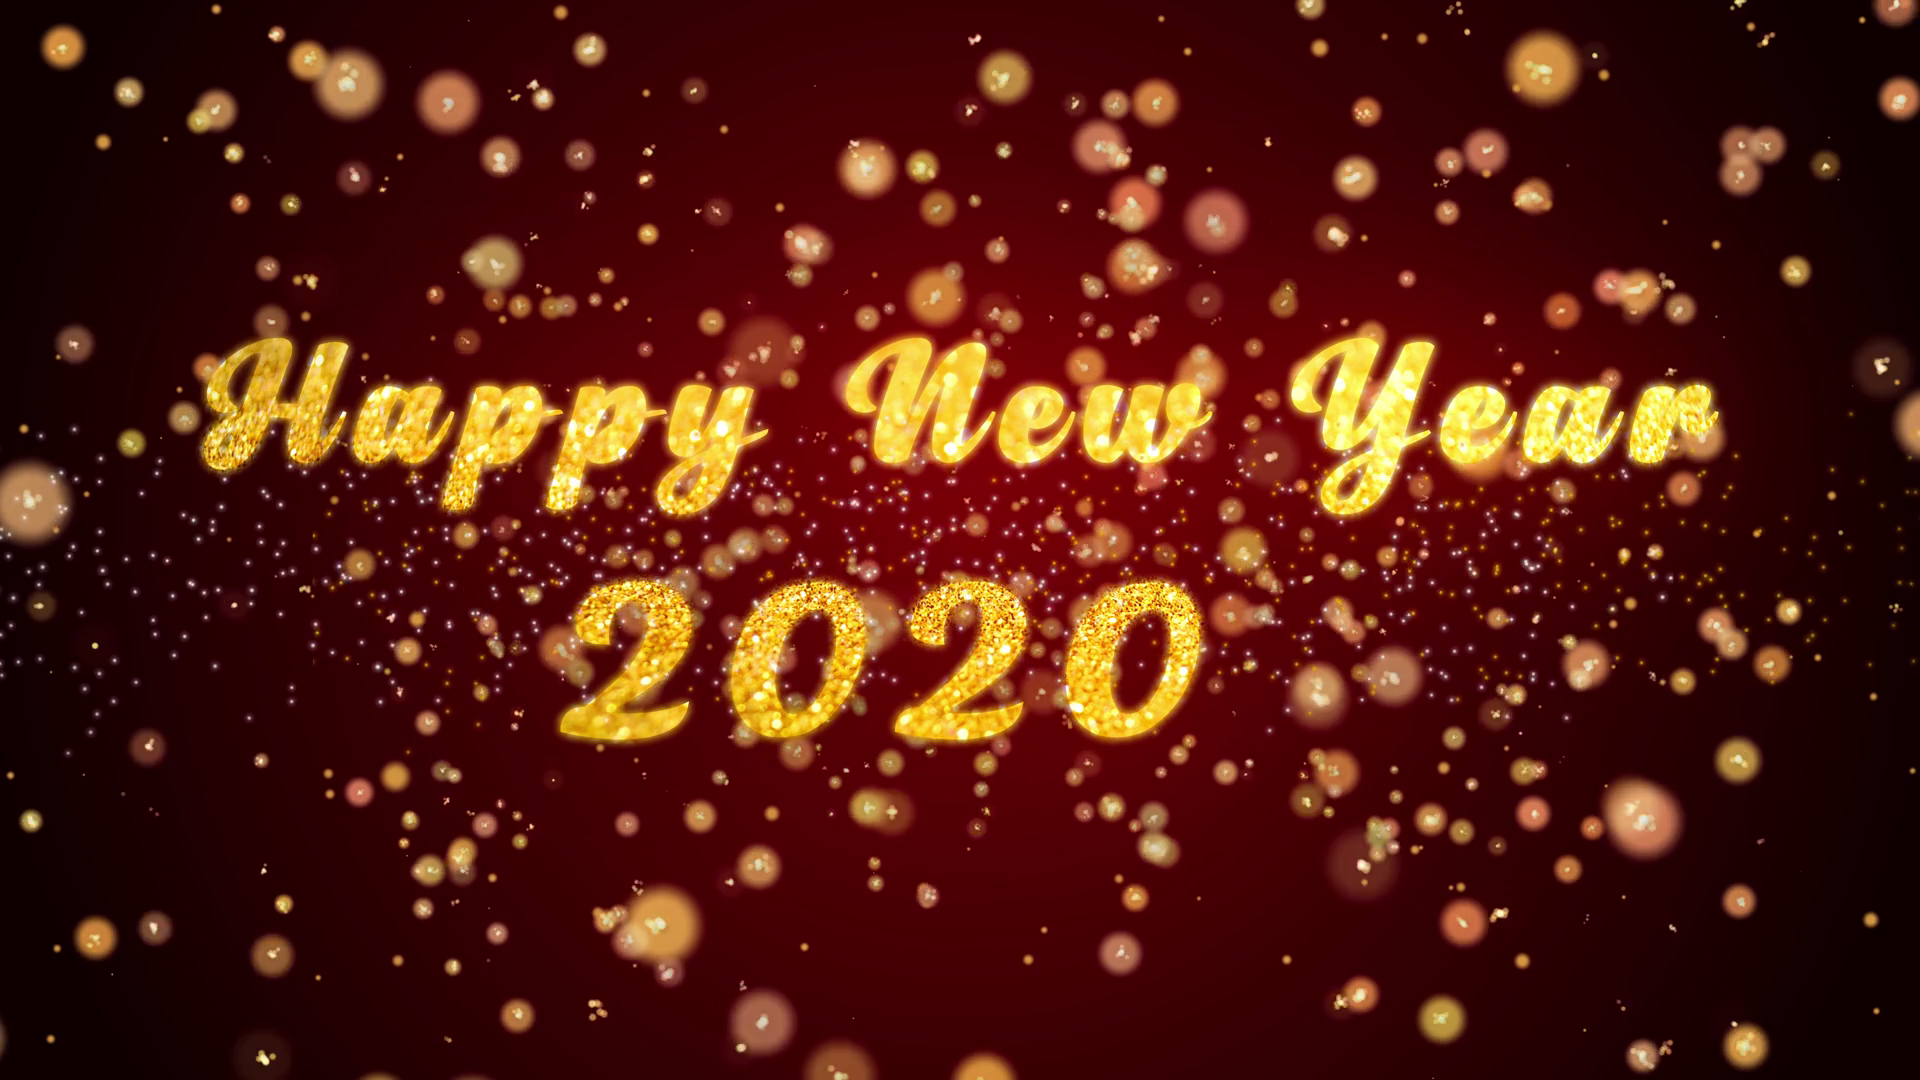 happy new year 2020 greeting card text with sparkling